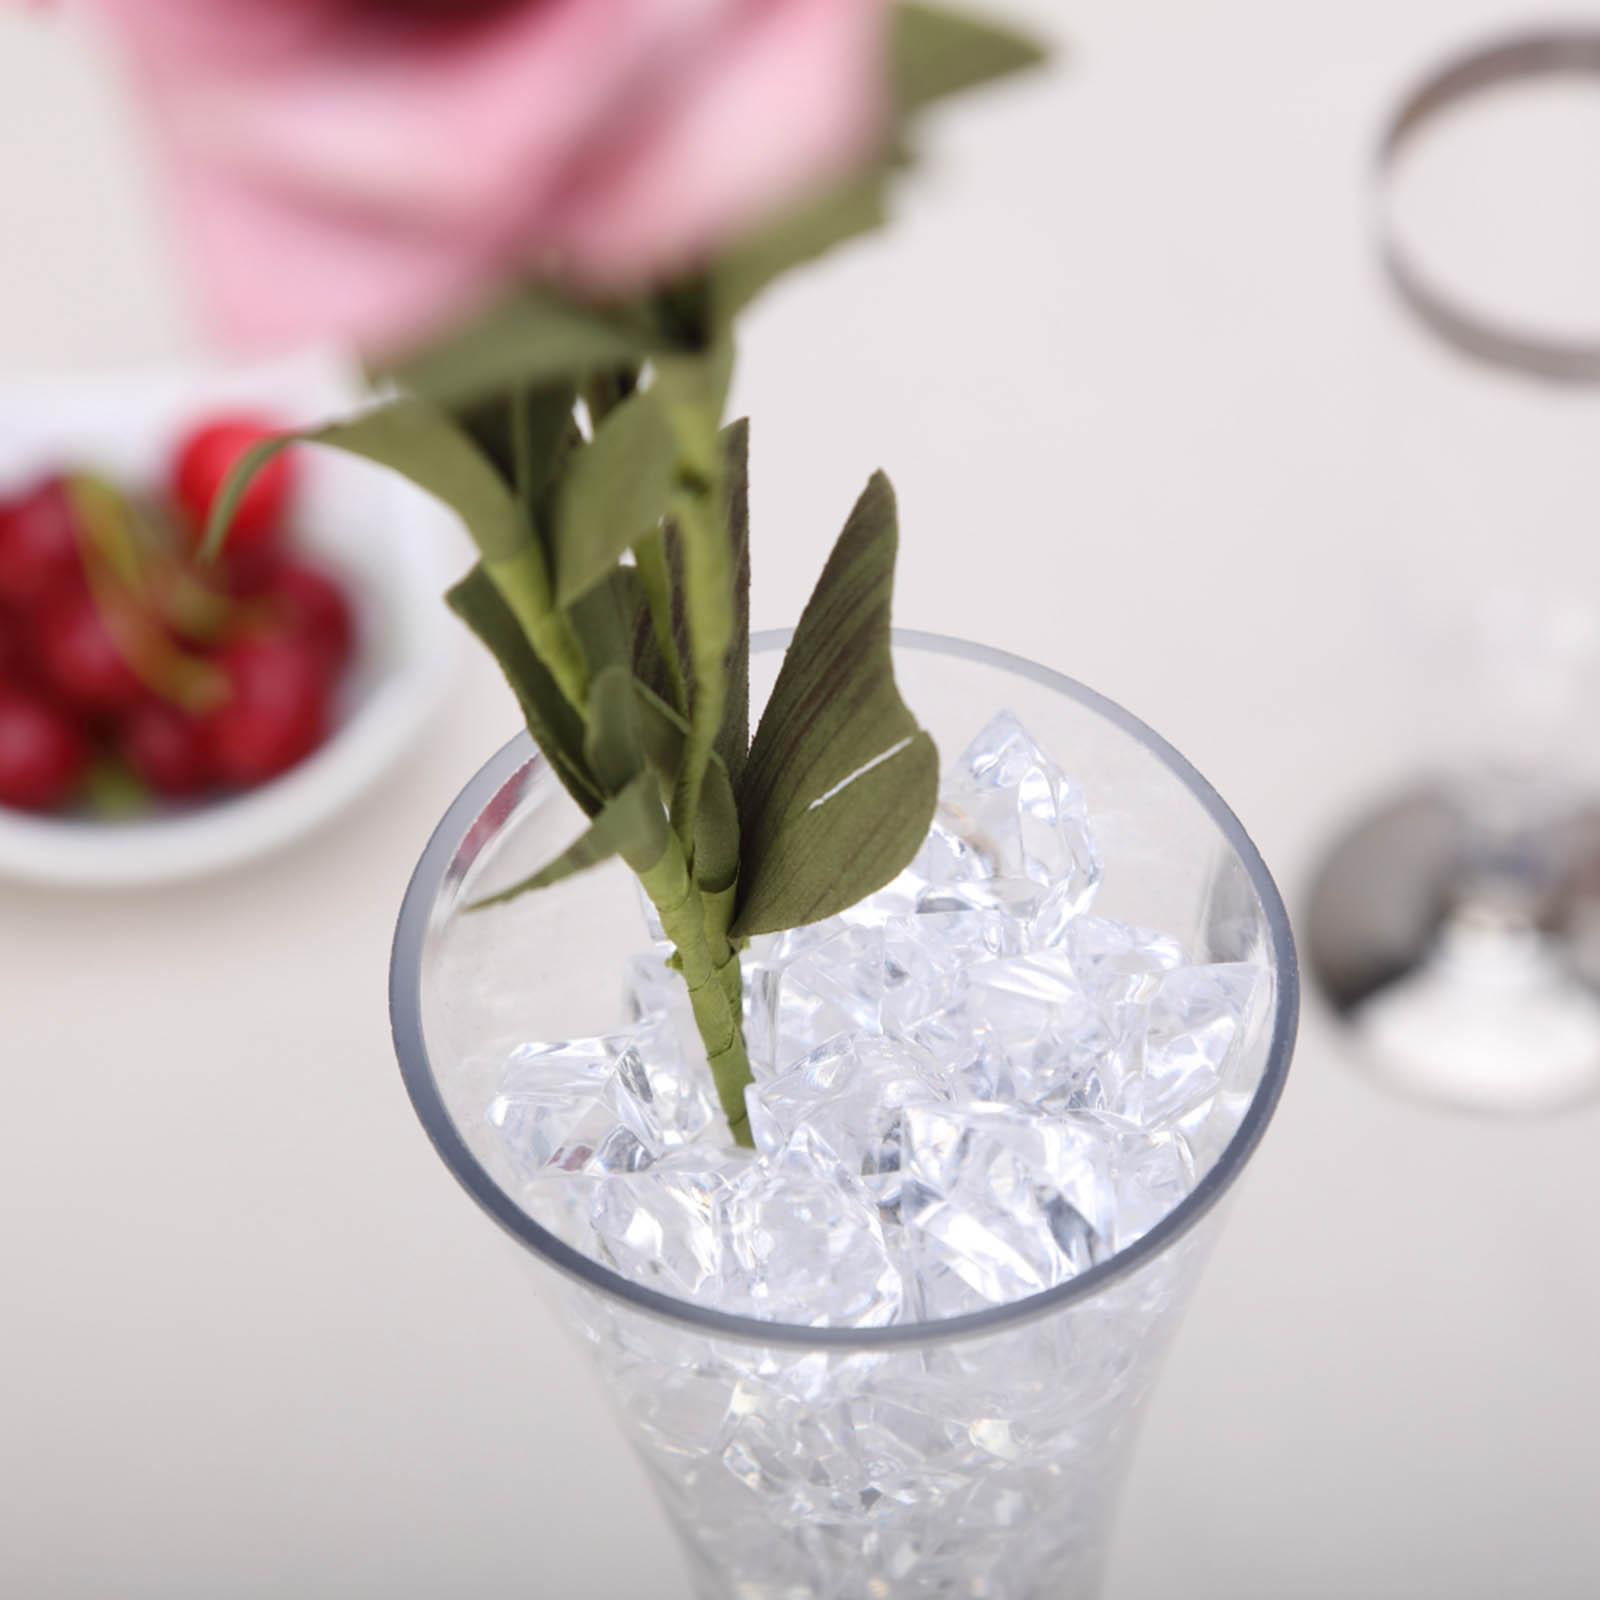 300-Acrylic-Ice-CRYSTAL-LIKE-Pieces-Wedding-Centerpieces-Decorations-Supplies thumbnail 22